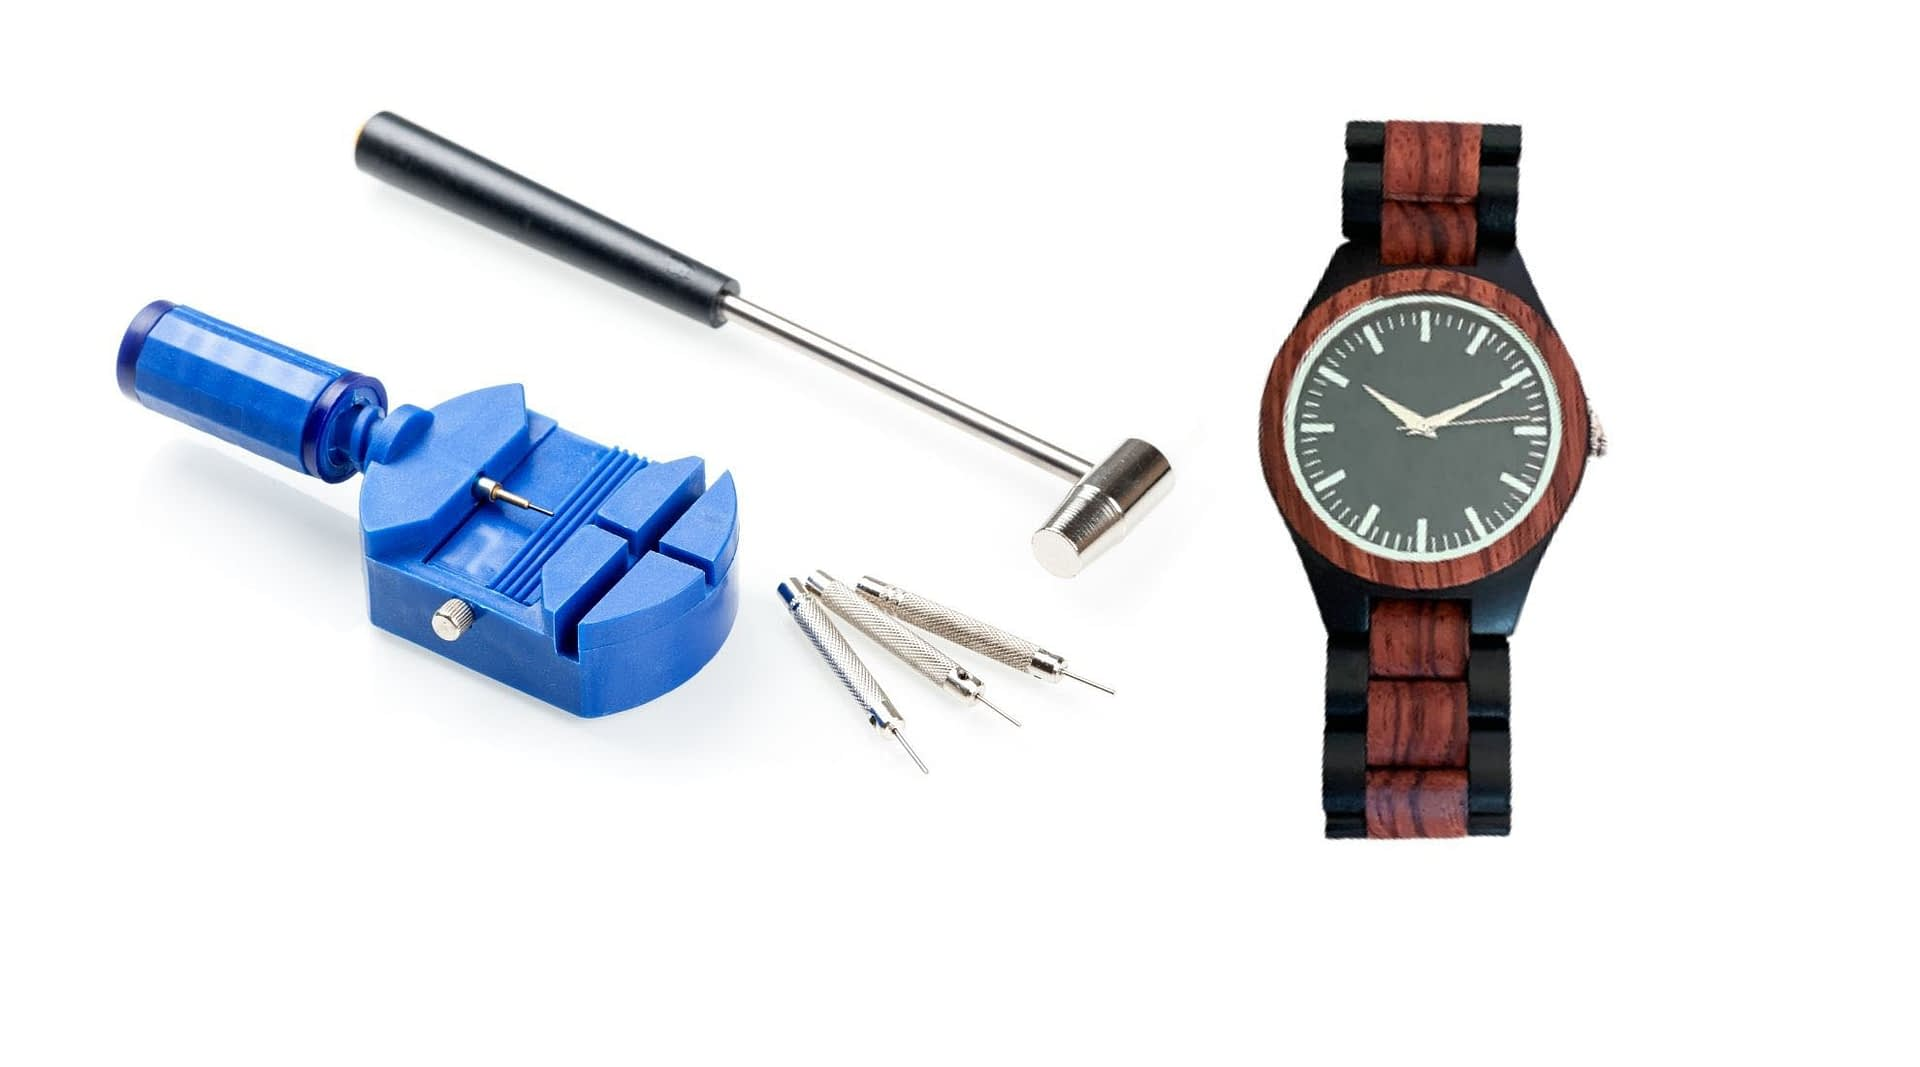 How to Adjust the Band of Wooden Watches